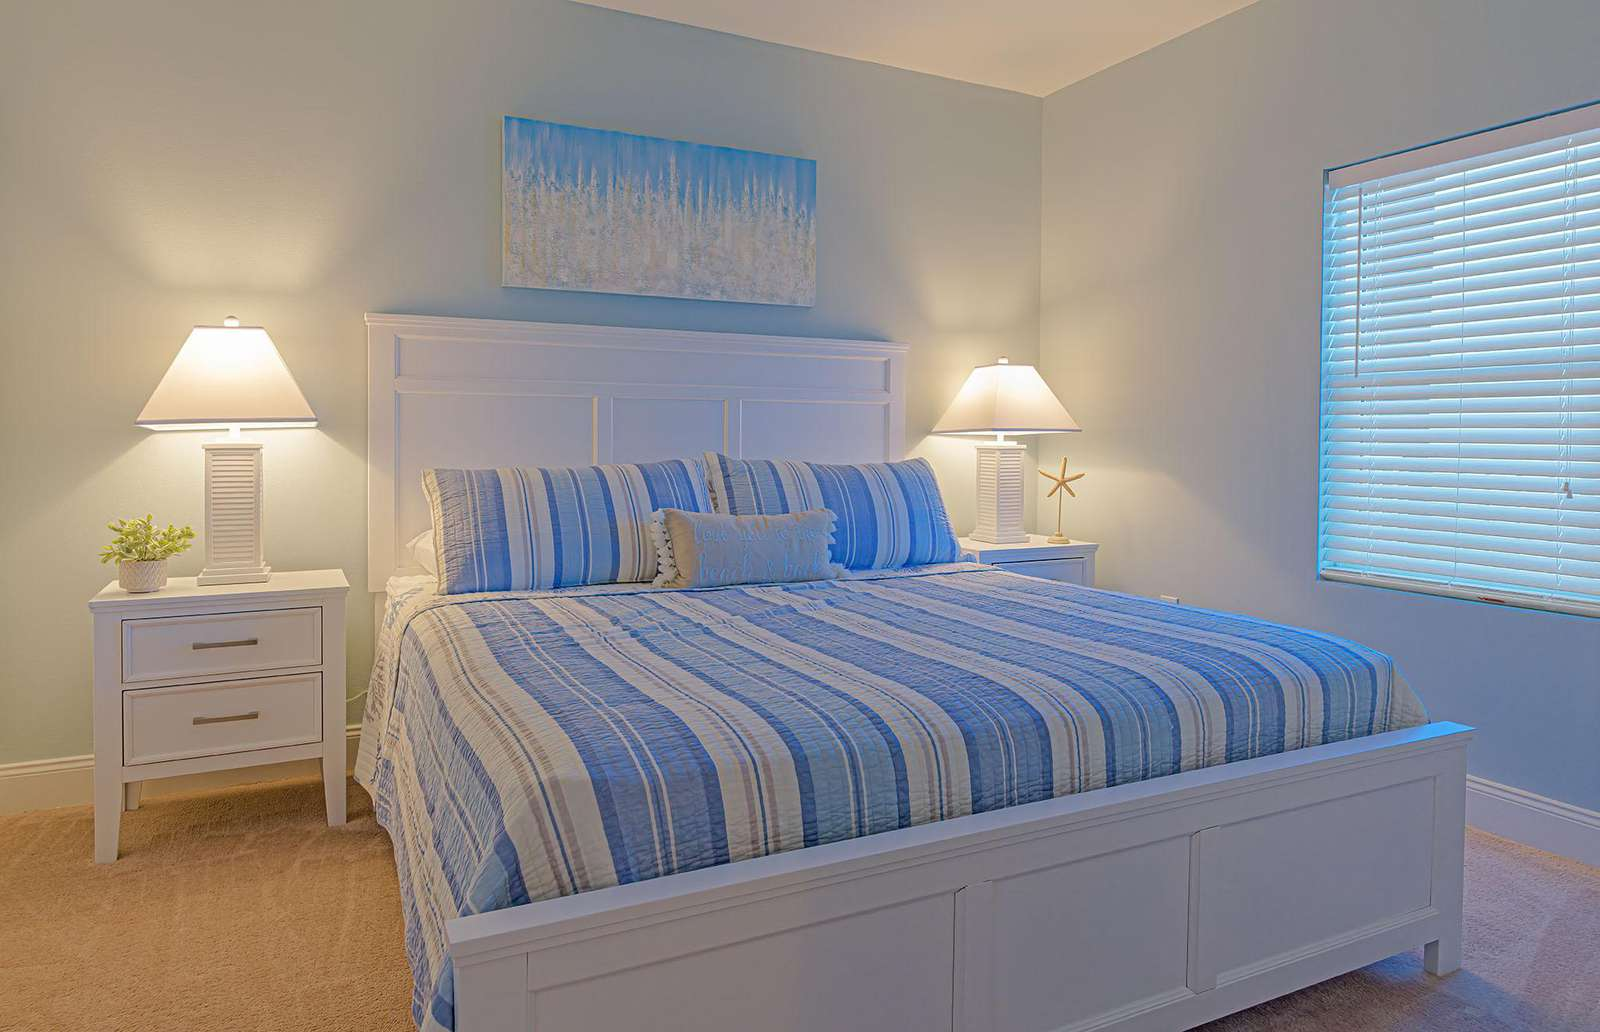 The guest bedroom features a comfy king bed and more!